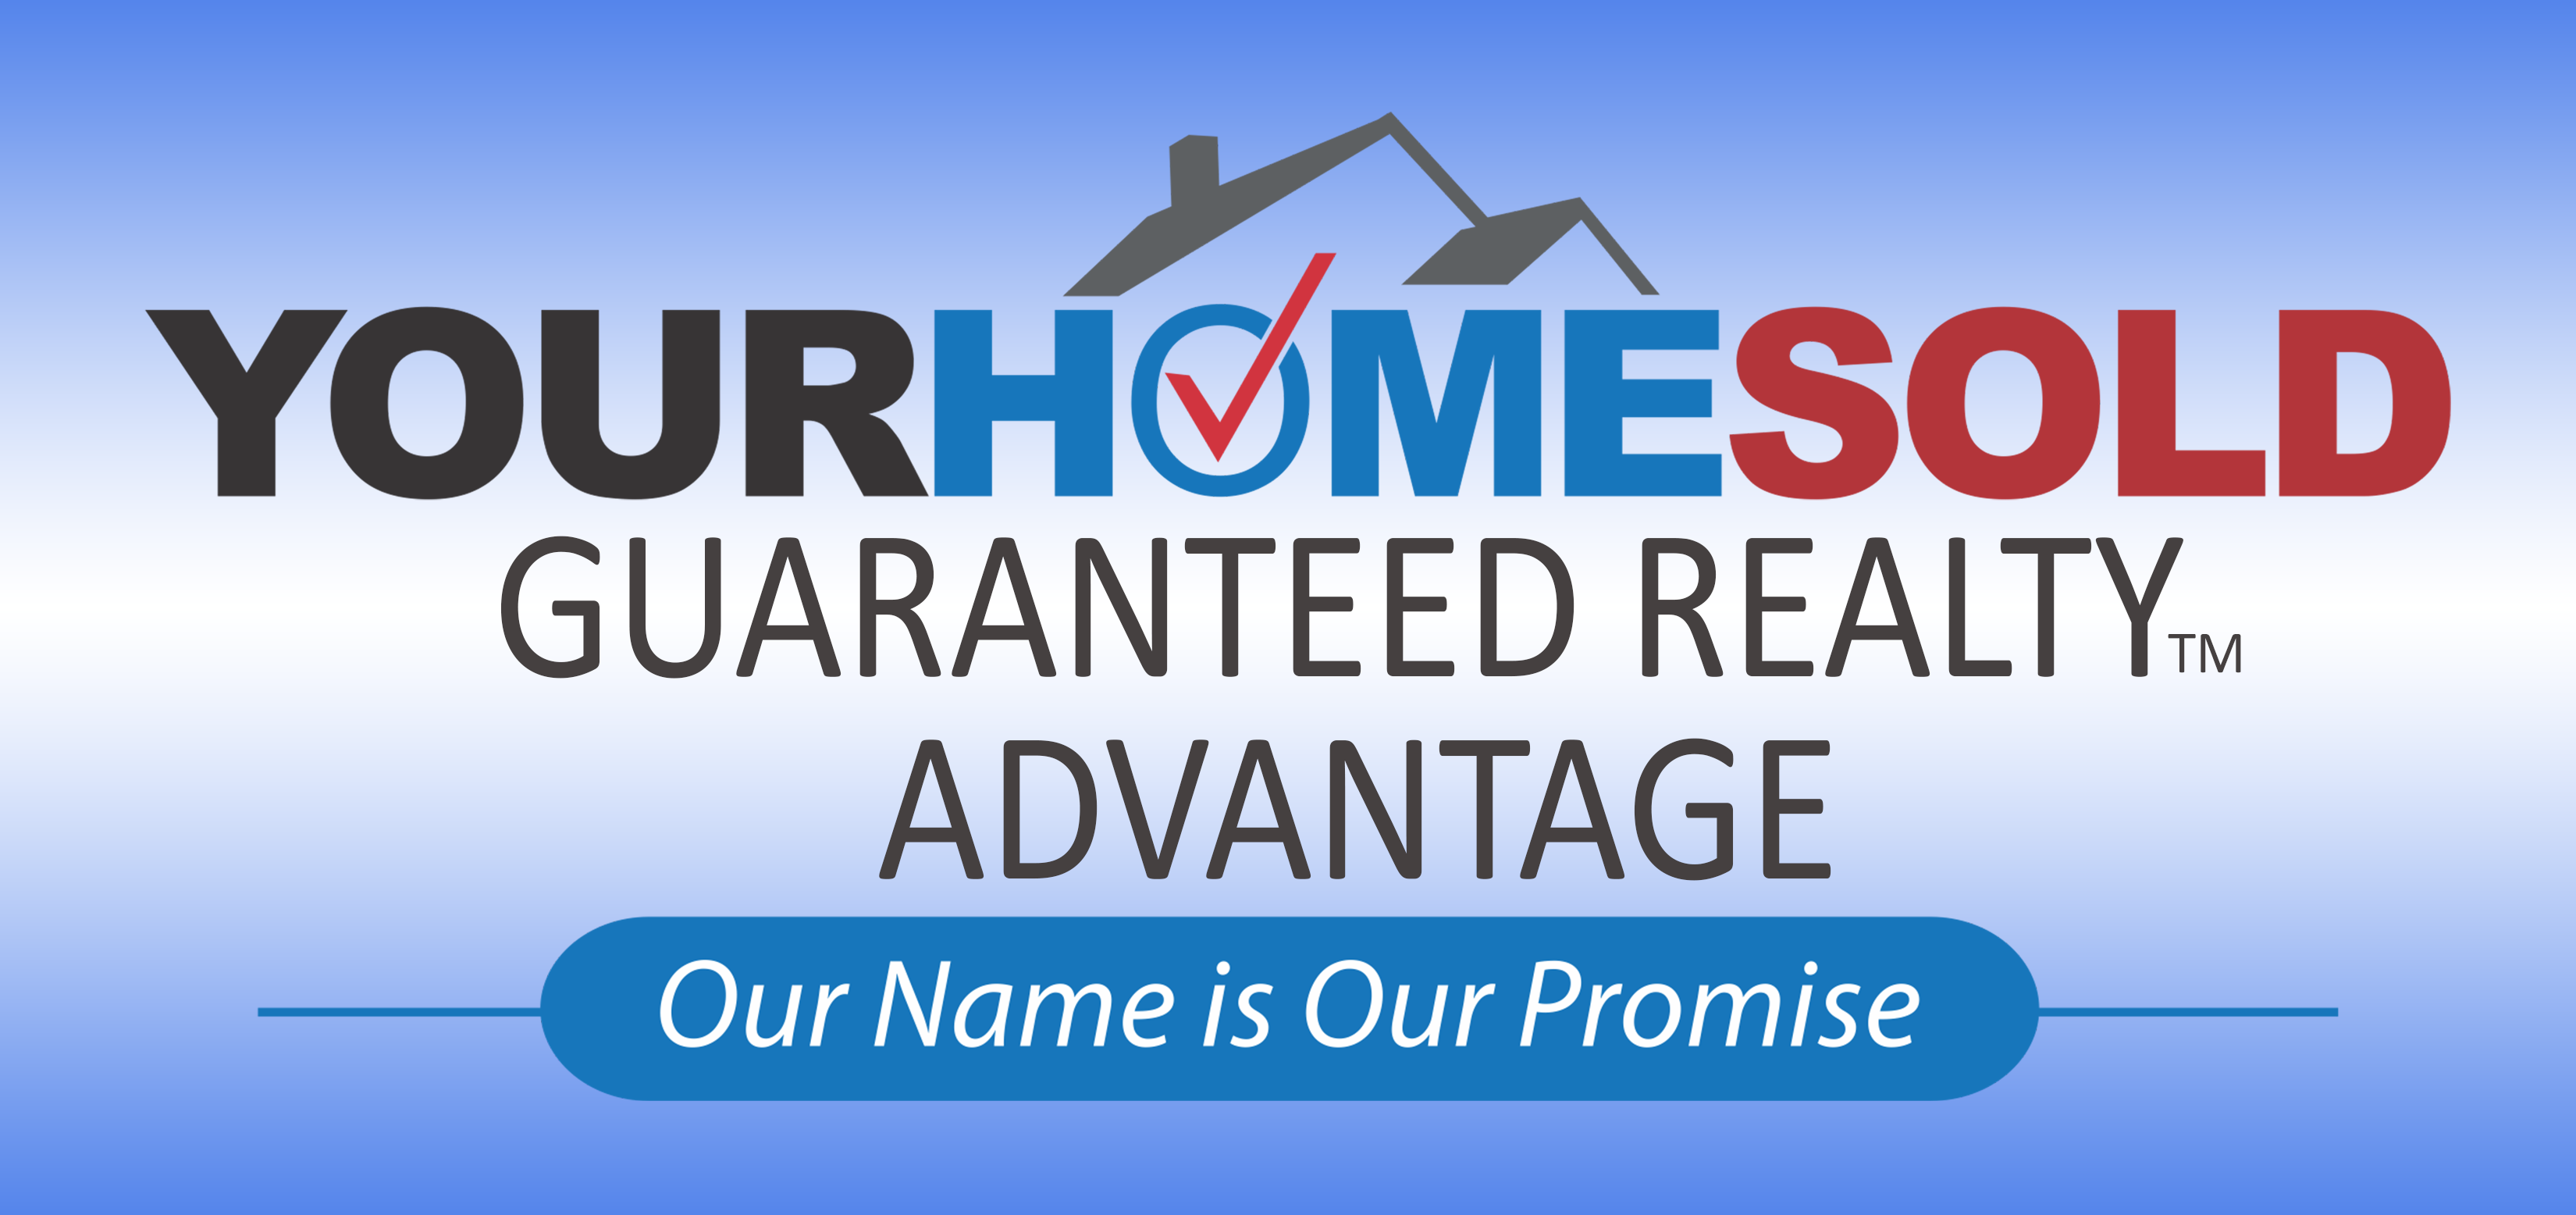 Your Home Sold Guaranteed Realty Advantage logo